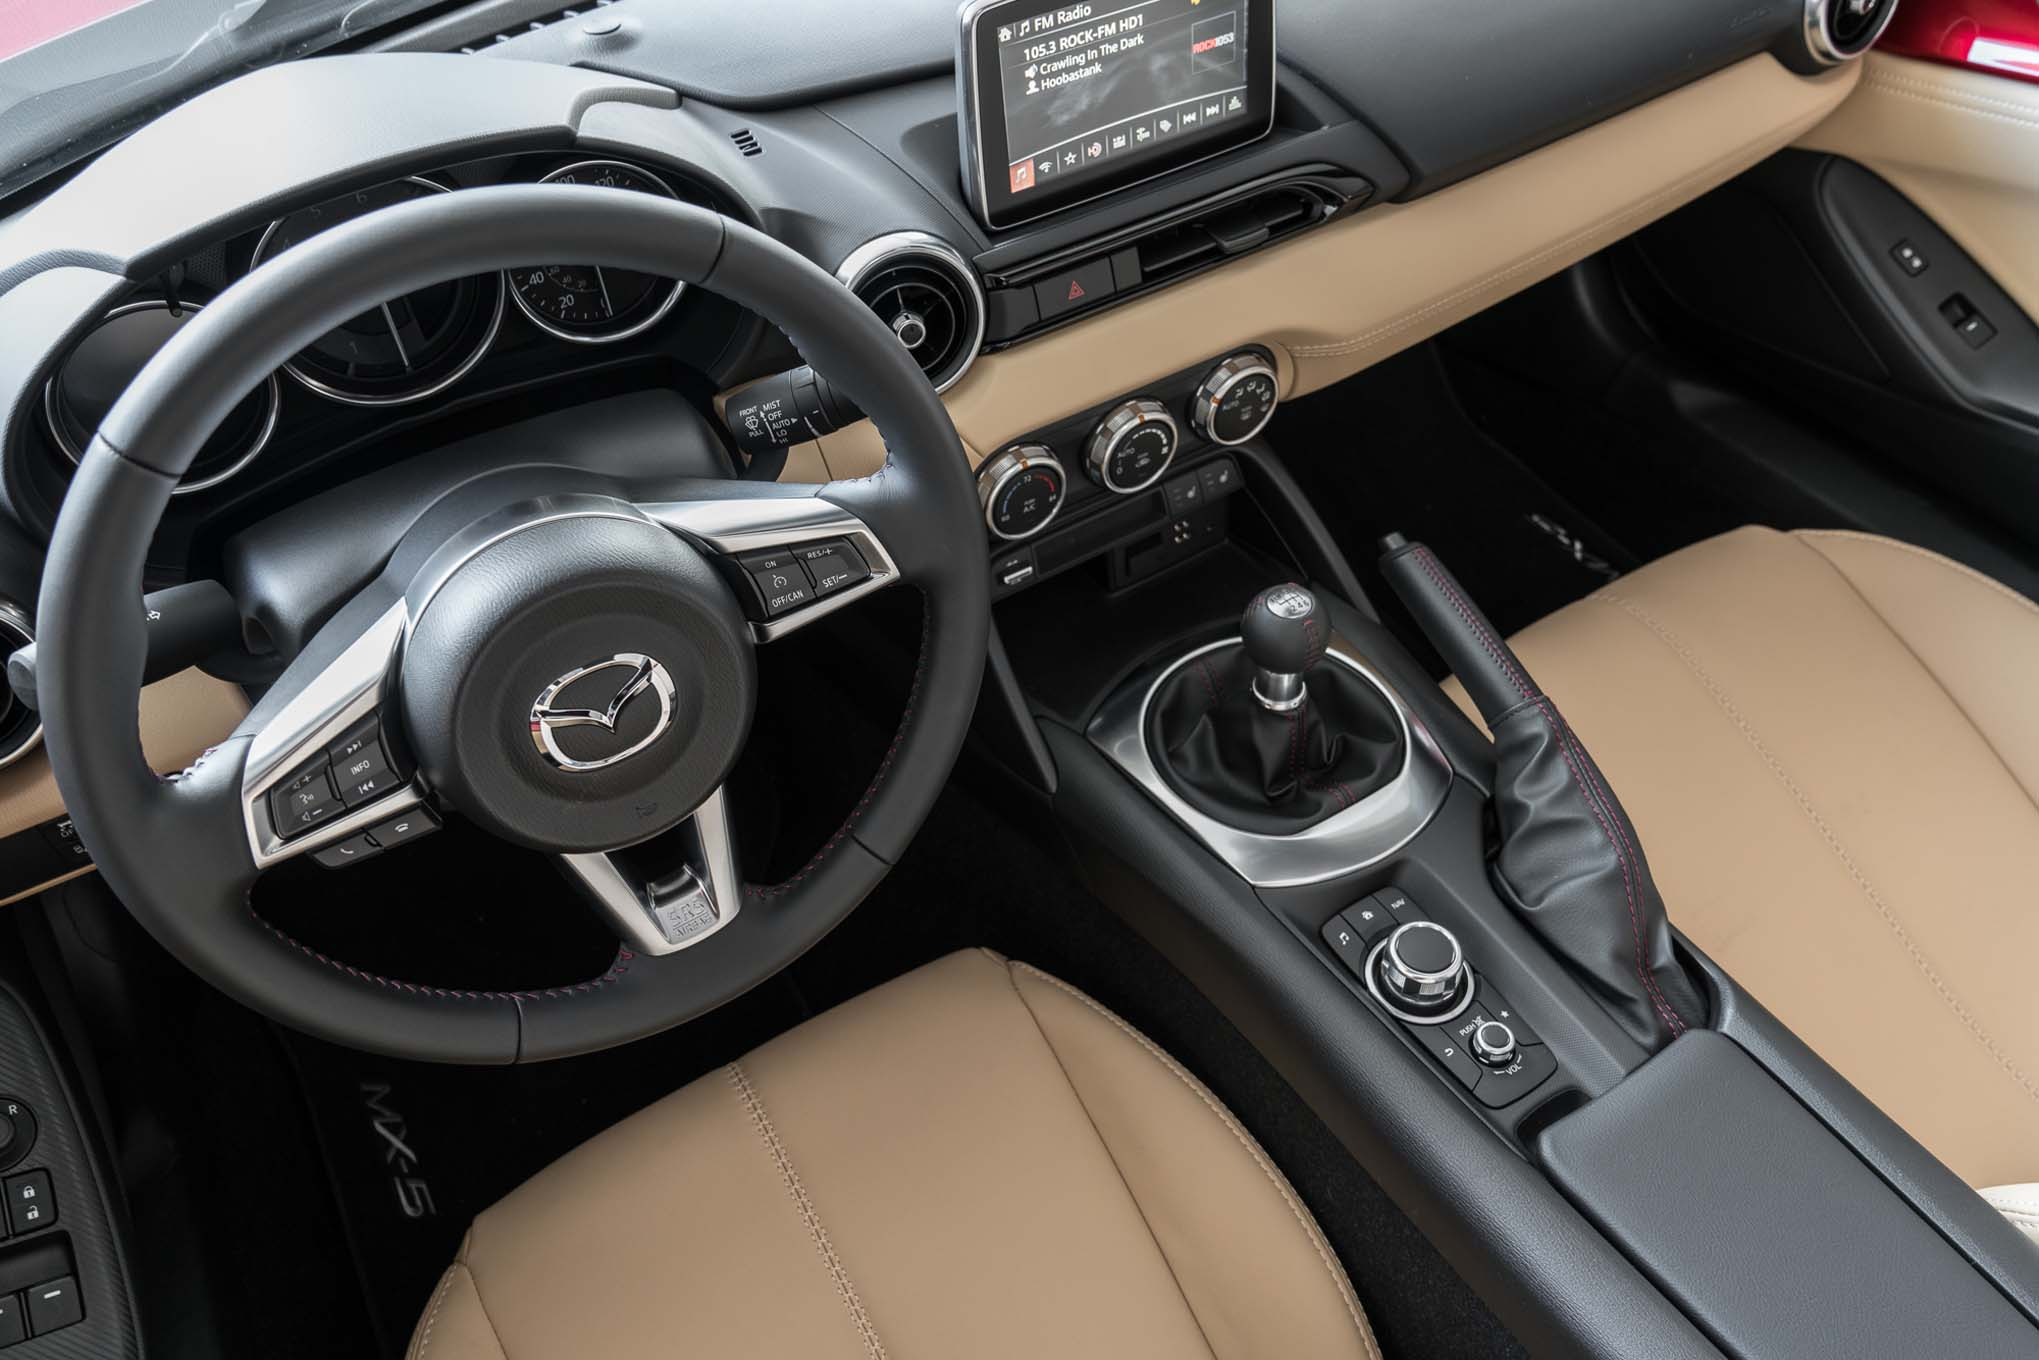 2017 mazda mx 5 miata rf interior view motor trend en espa ol. Black Bedroom Furniture Sets. Home Design Ideas